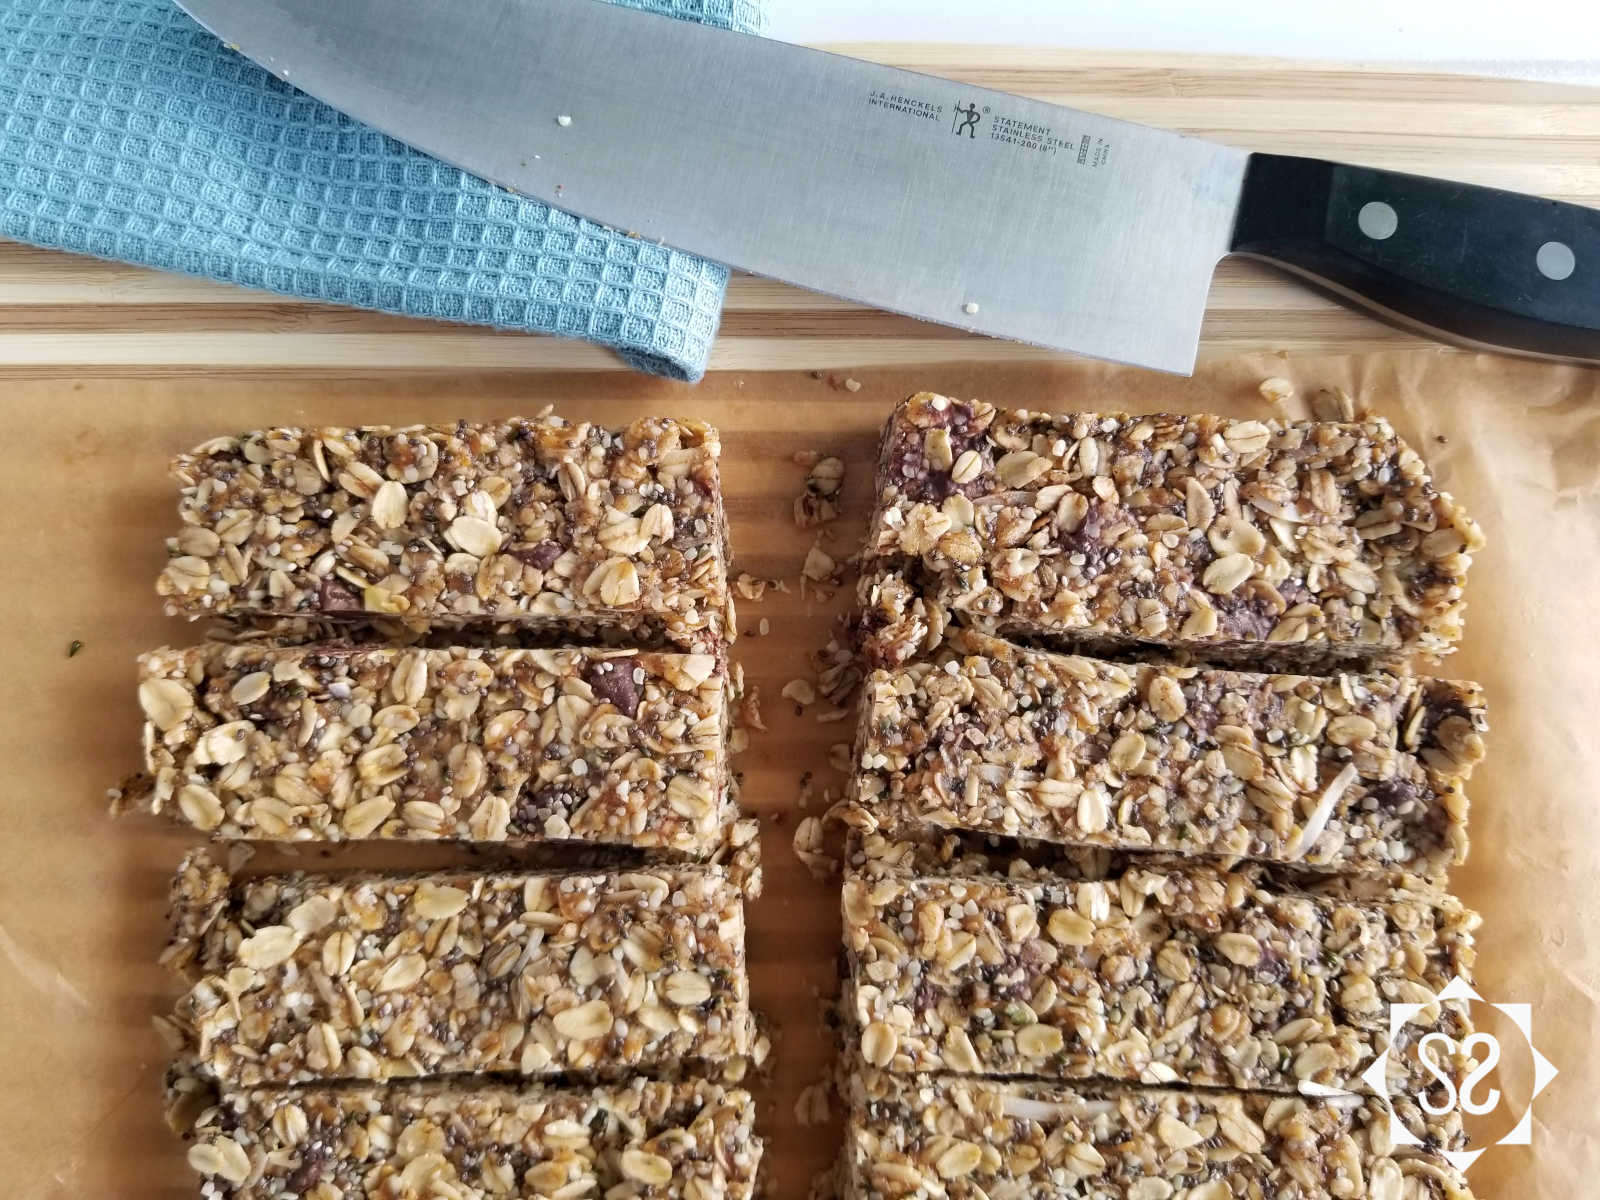 Granola bars cut up on a cutting board with a knife